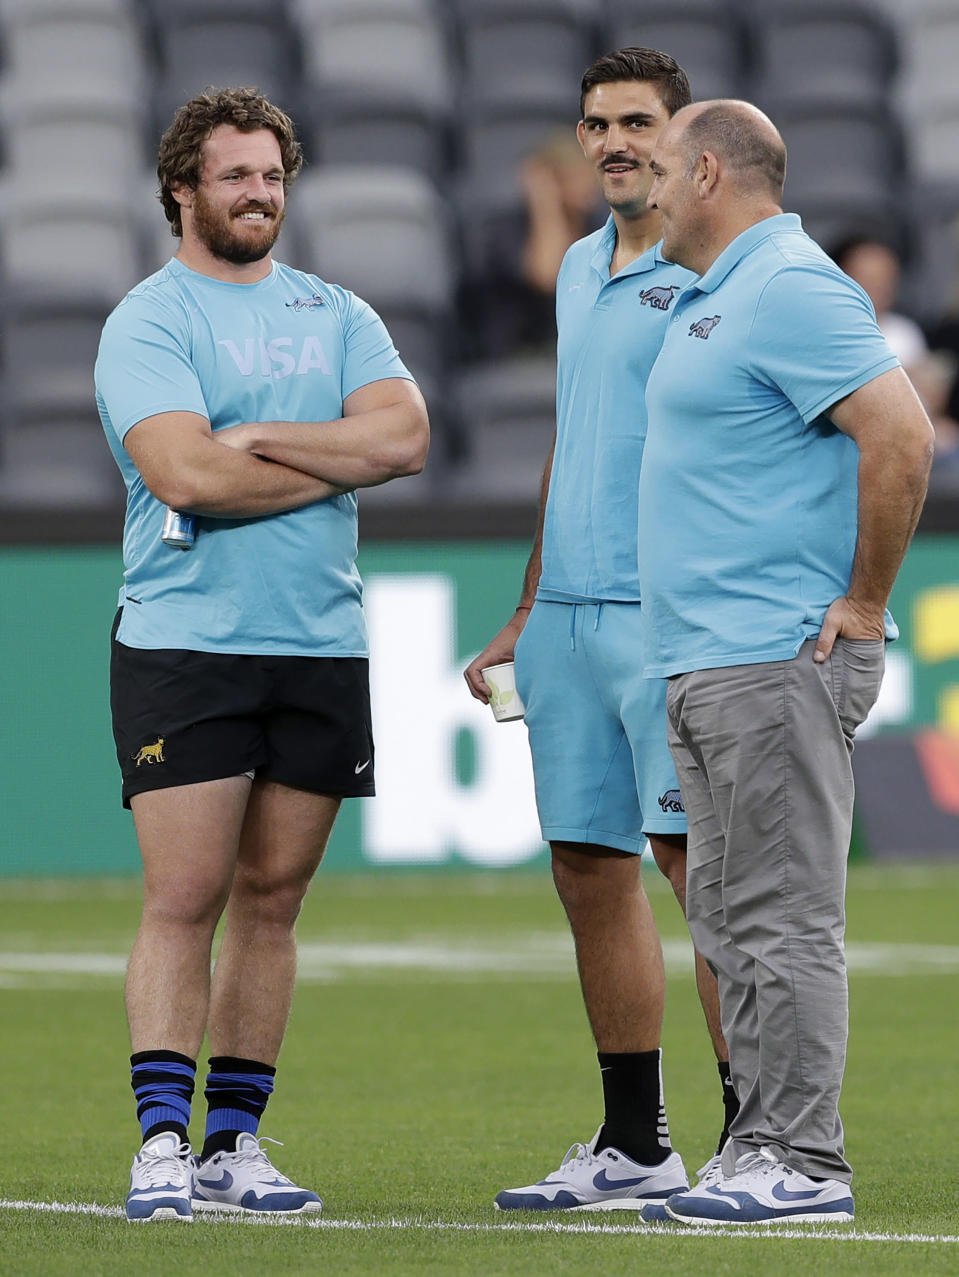 Argentina's Pablo Matera, second right, and Julian Montoya talk with head coach Mario Ledesma on the field prior to their Tri-Nations rugby union match against Australia in Sydney, Australia, Saturday, Dec. 5, 2020. (AP Photo/Rick Rycroft)